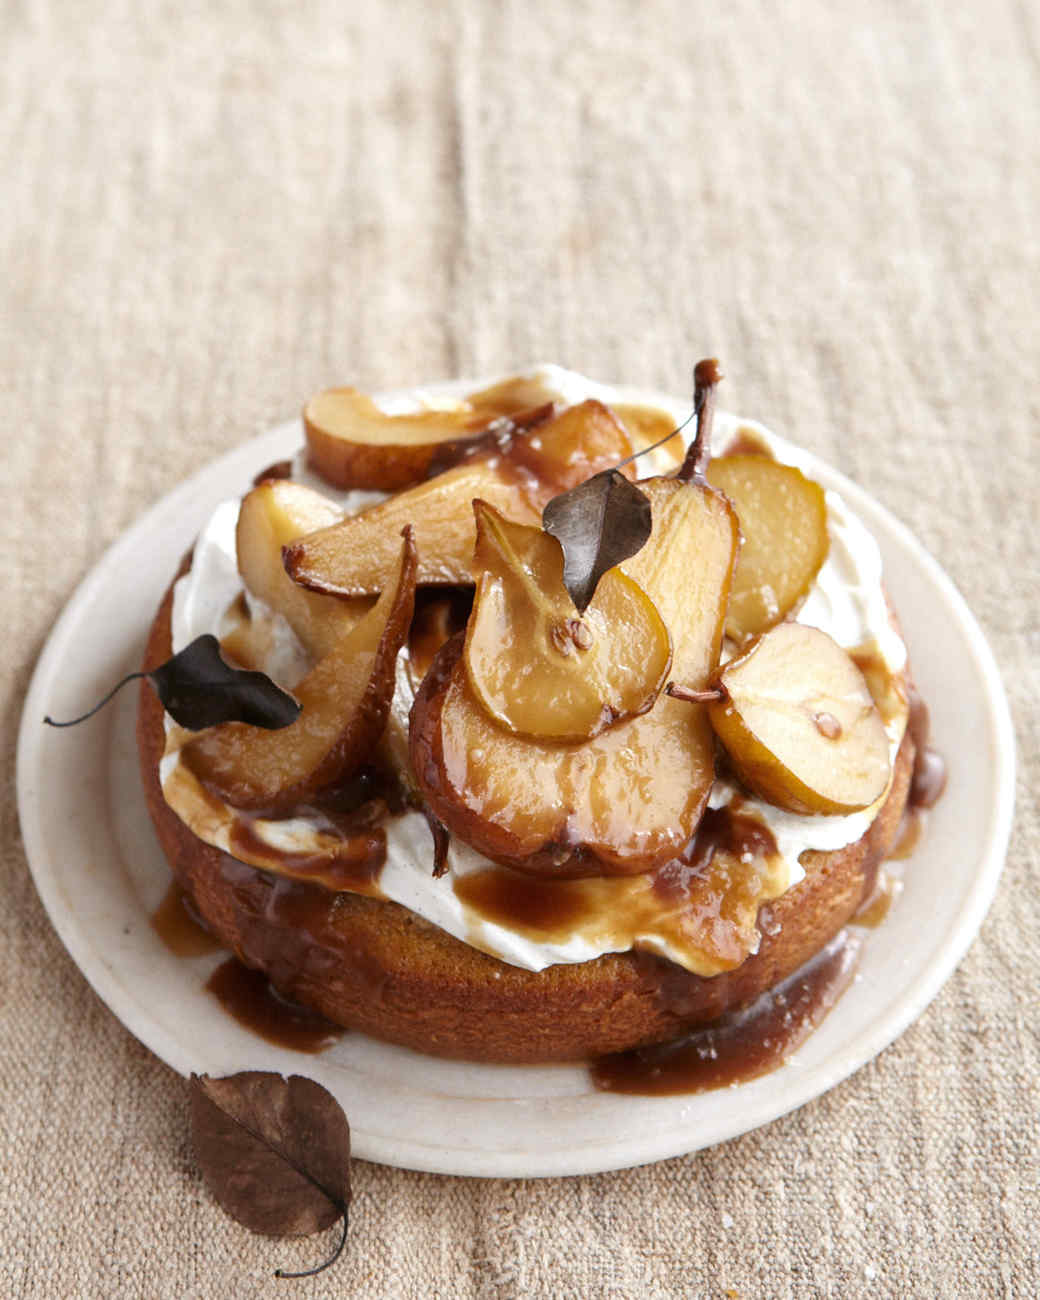 olive oil cake caramelized pears